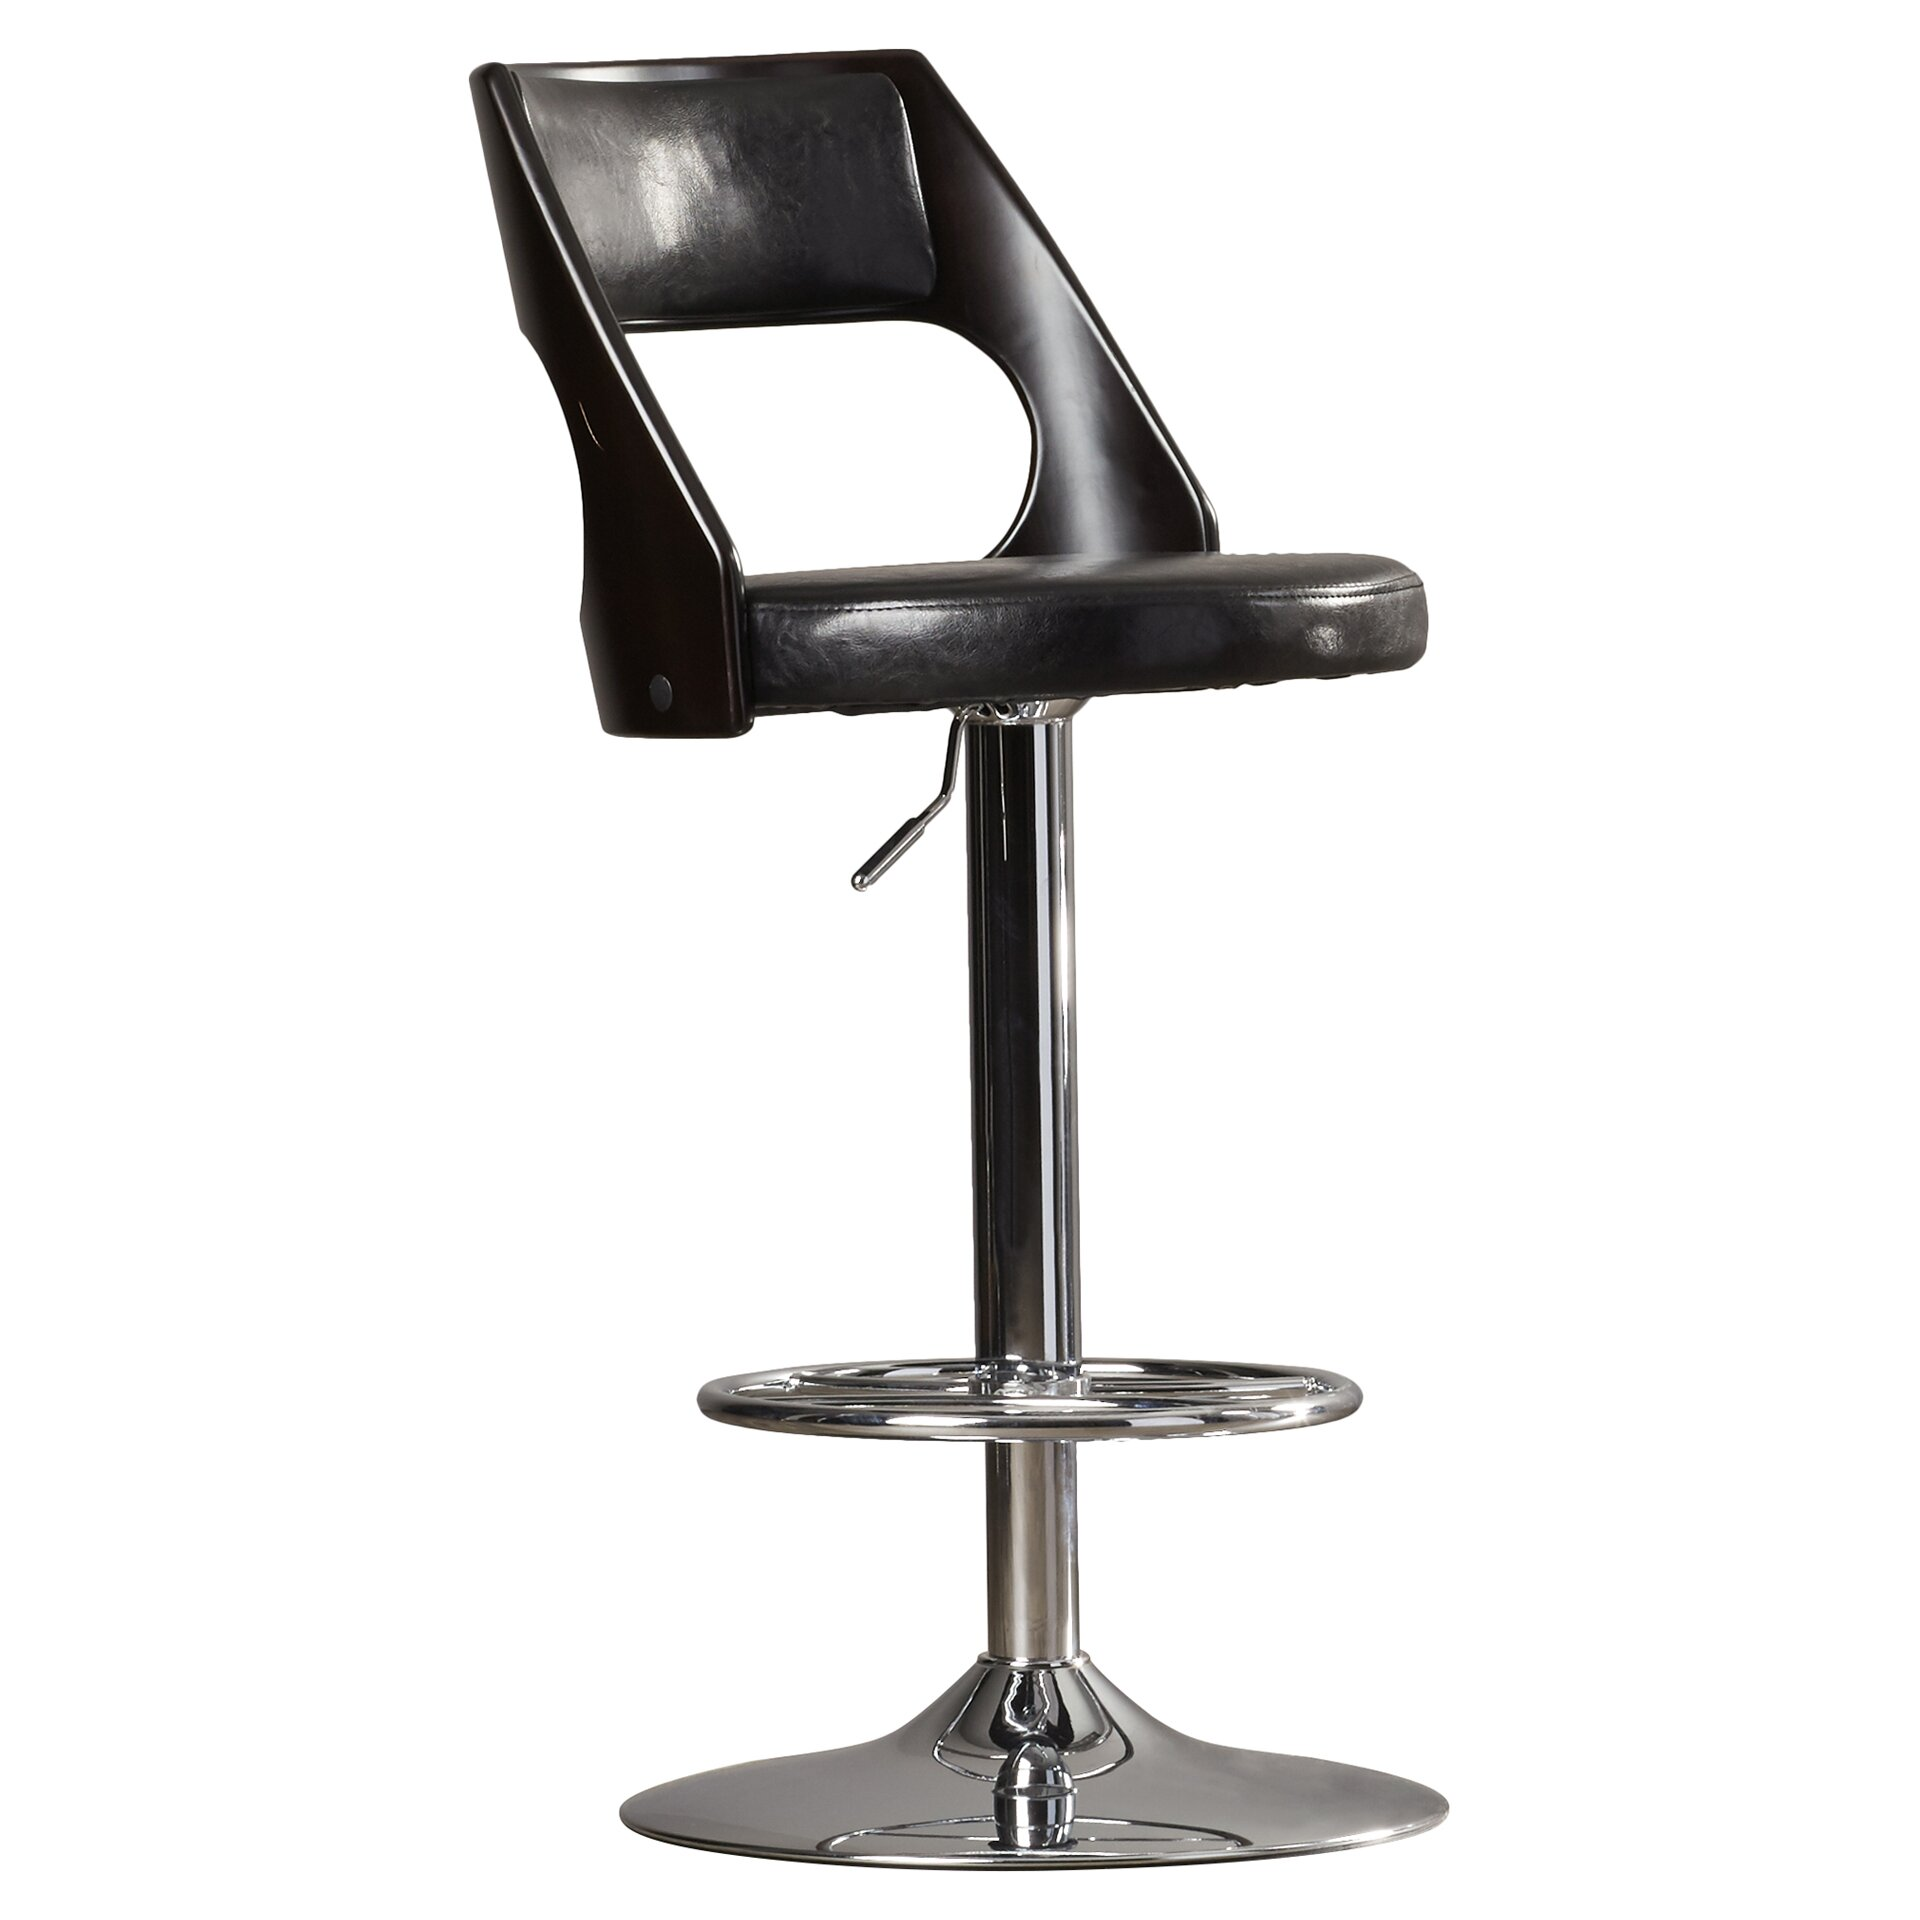 bar height bar stools swivel langley street conejara  : Langley Street Conejara Adjustable Height Swivel Bar Stool LGLY1991 from newhairstylesformen2014.com size 1920 x 1920 jpeg 201kB